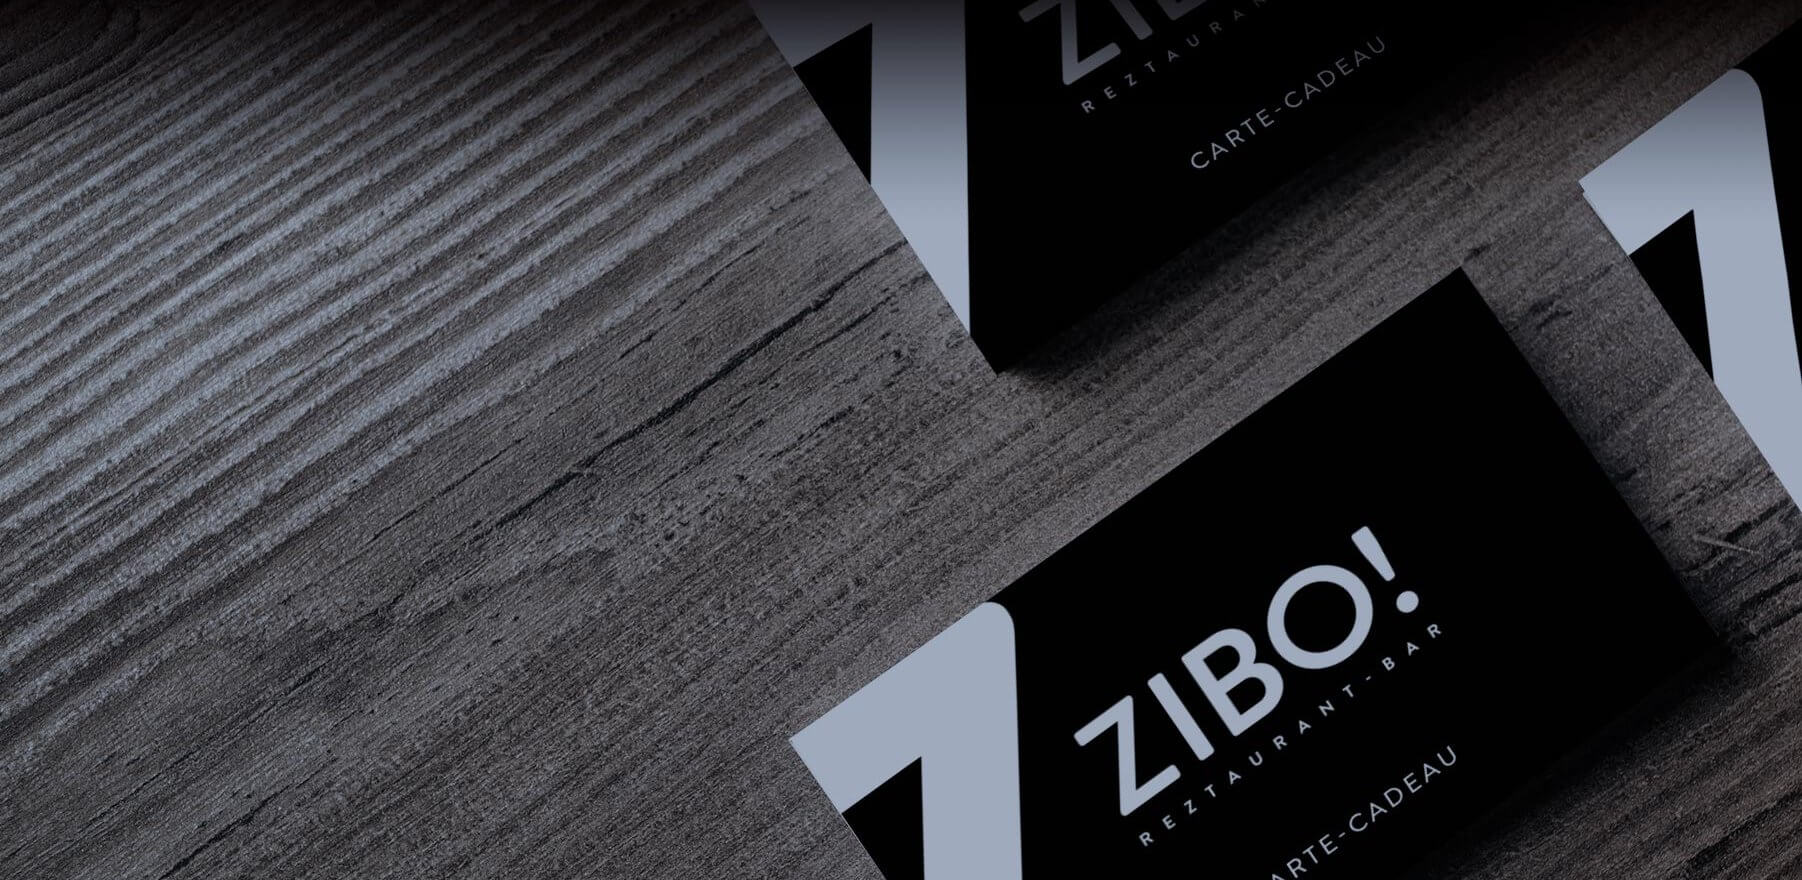 A Zibo! Gift Card on a table.